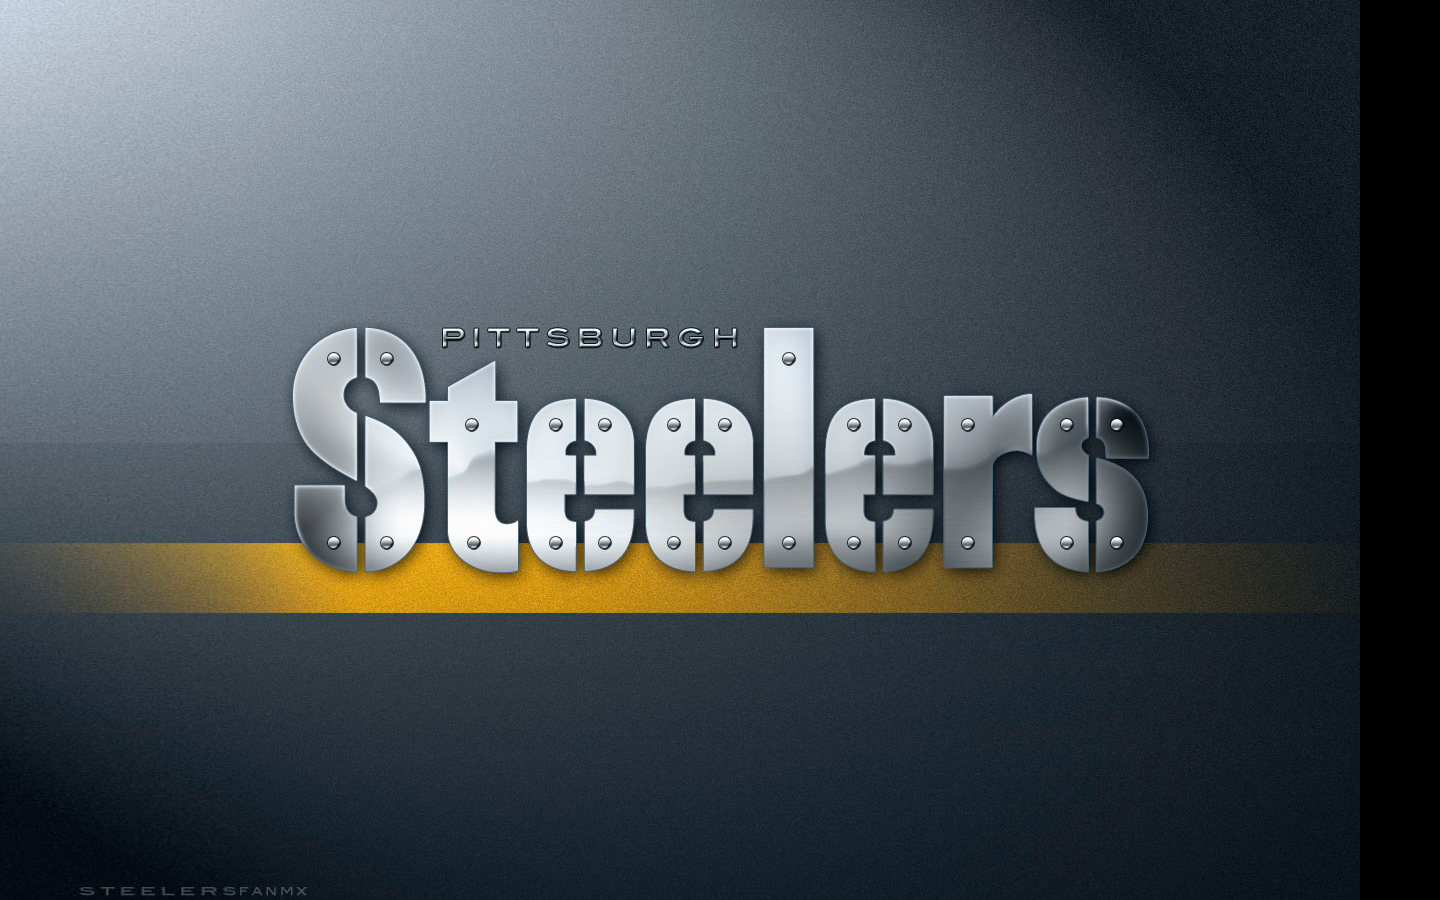 The Pittsburgh Steelers word